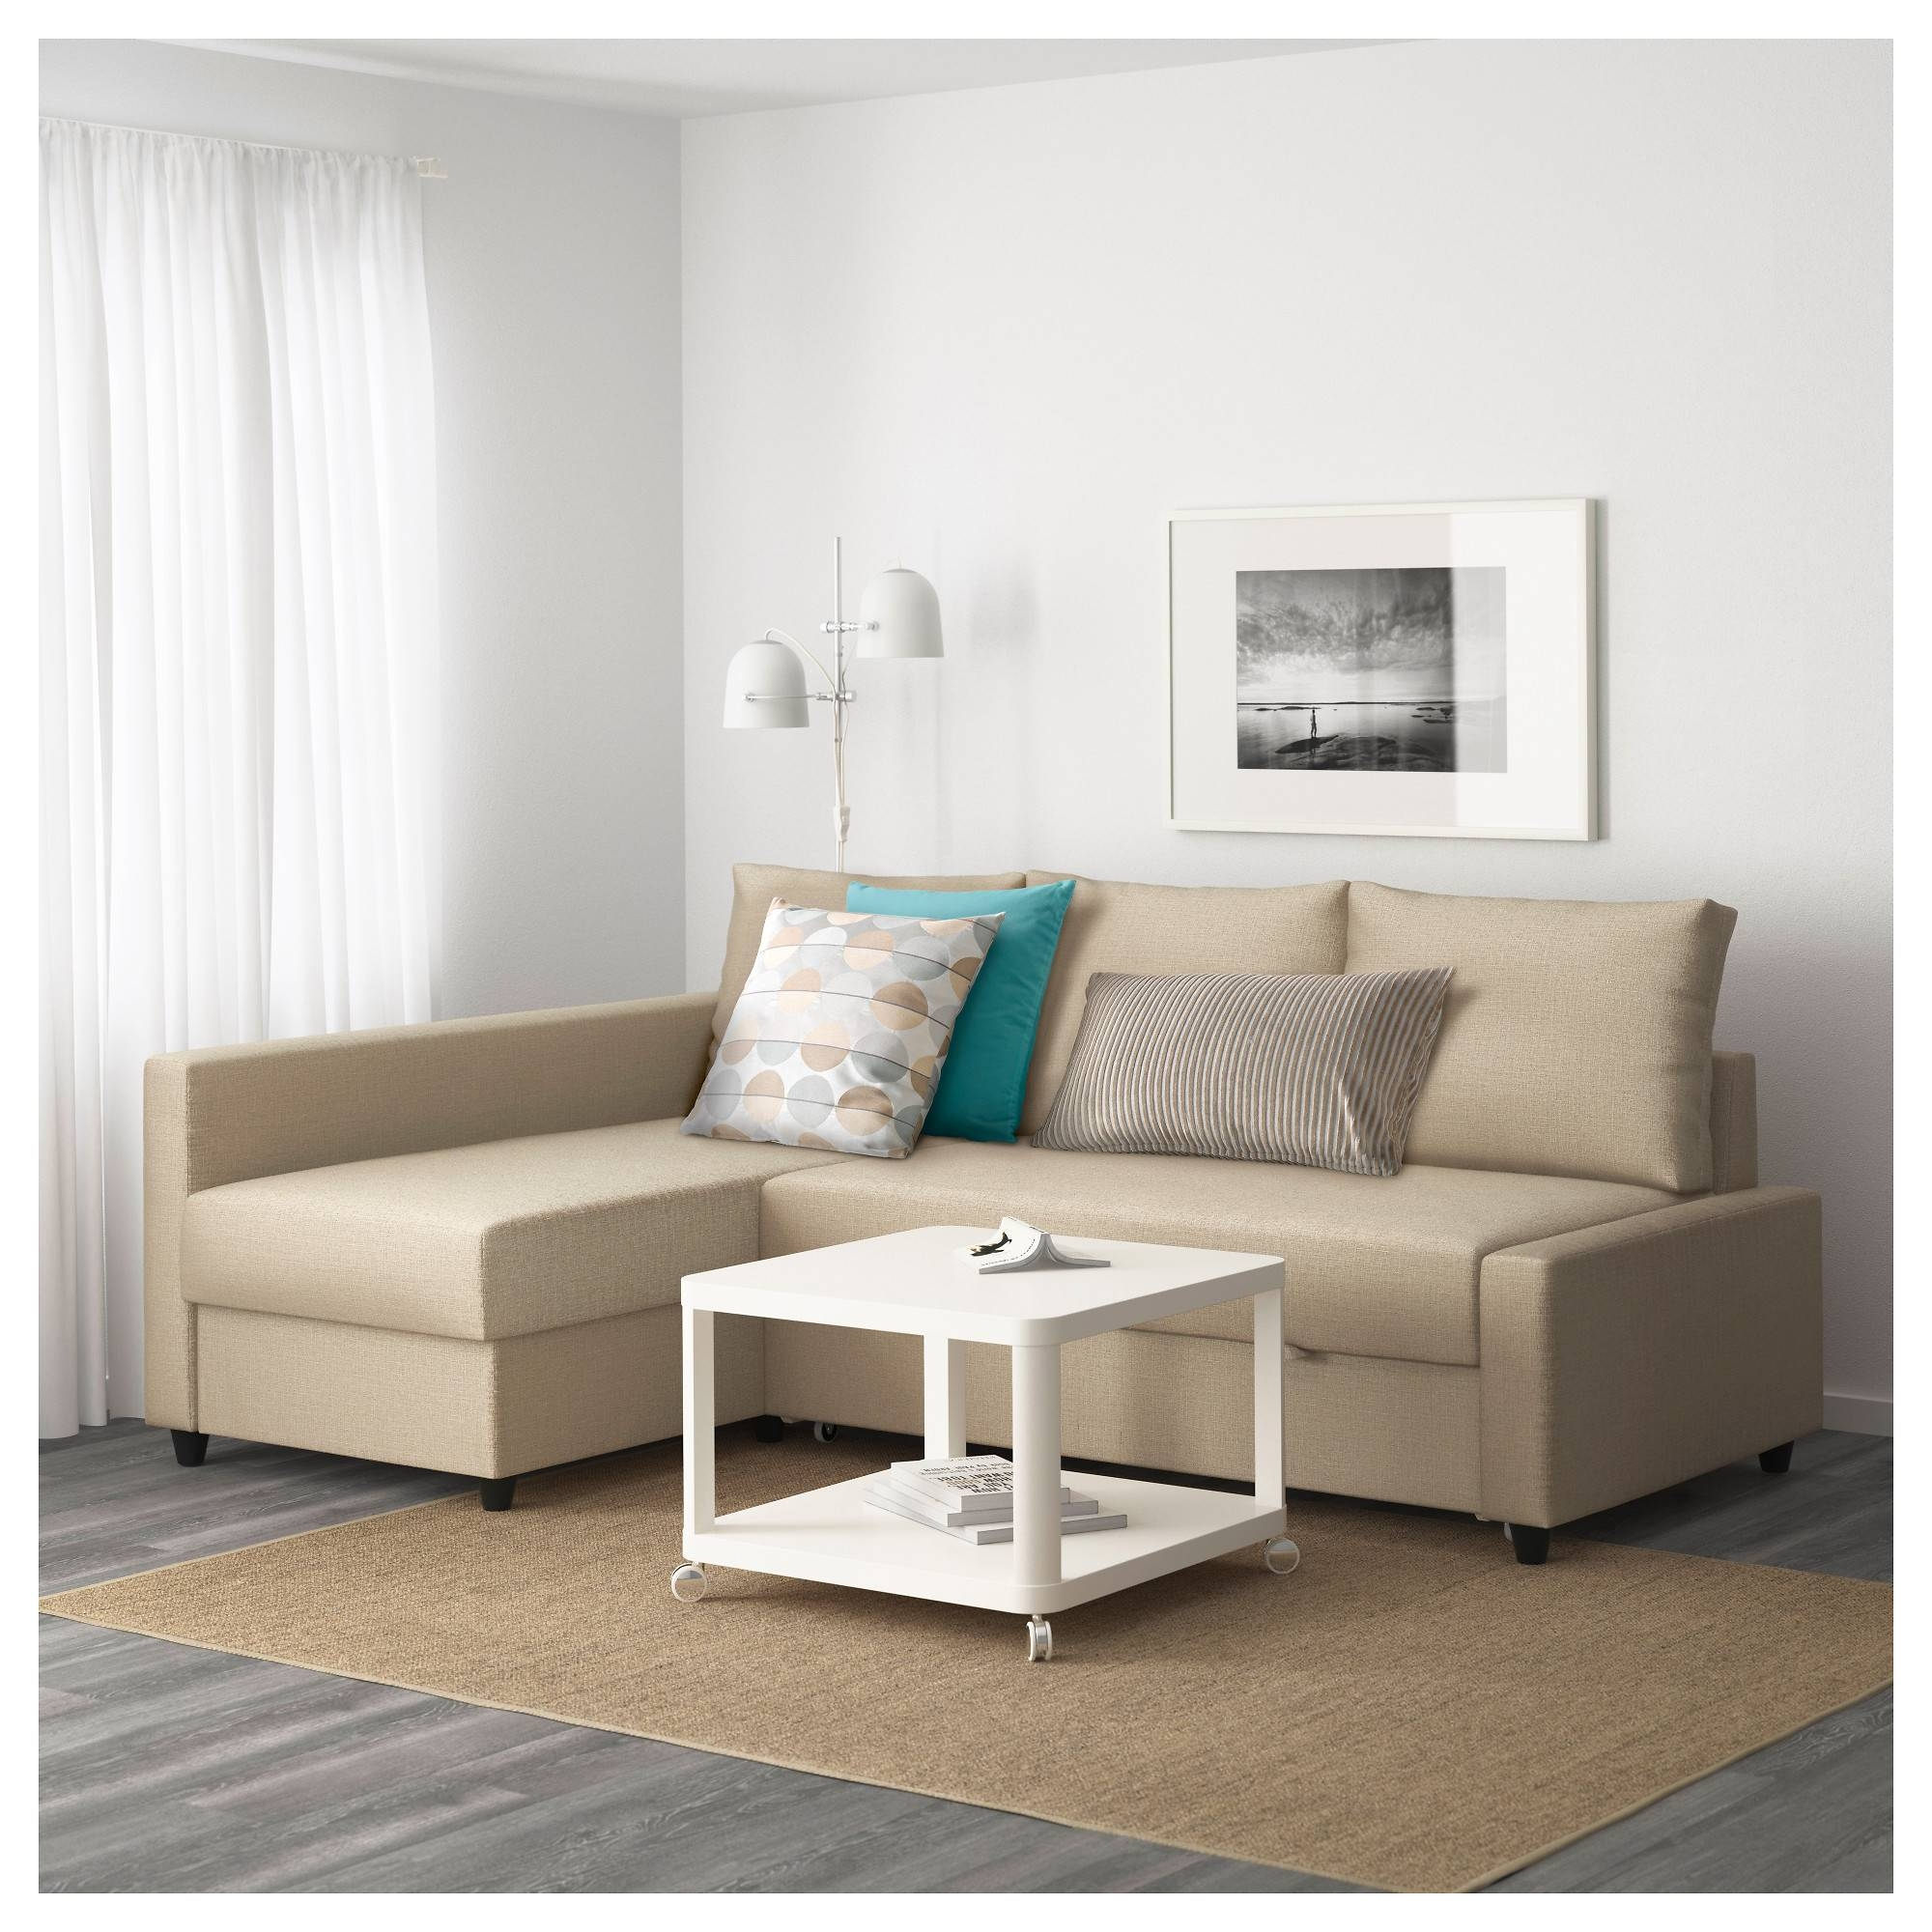 Friheten Corner Sofa-Bed With Storage Skiftebo Beige - Ikea regarding Ikea Sofa Storage (Image 3 of 25)